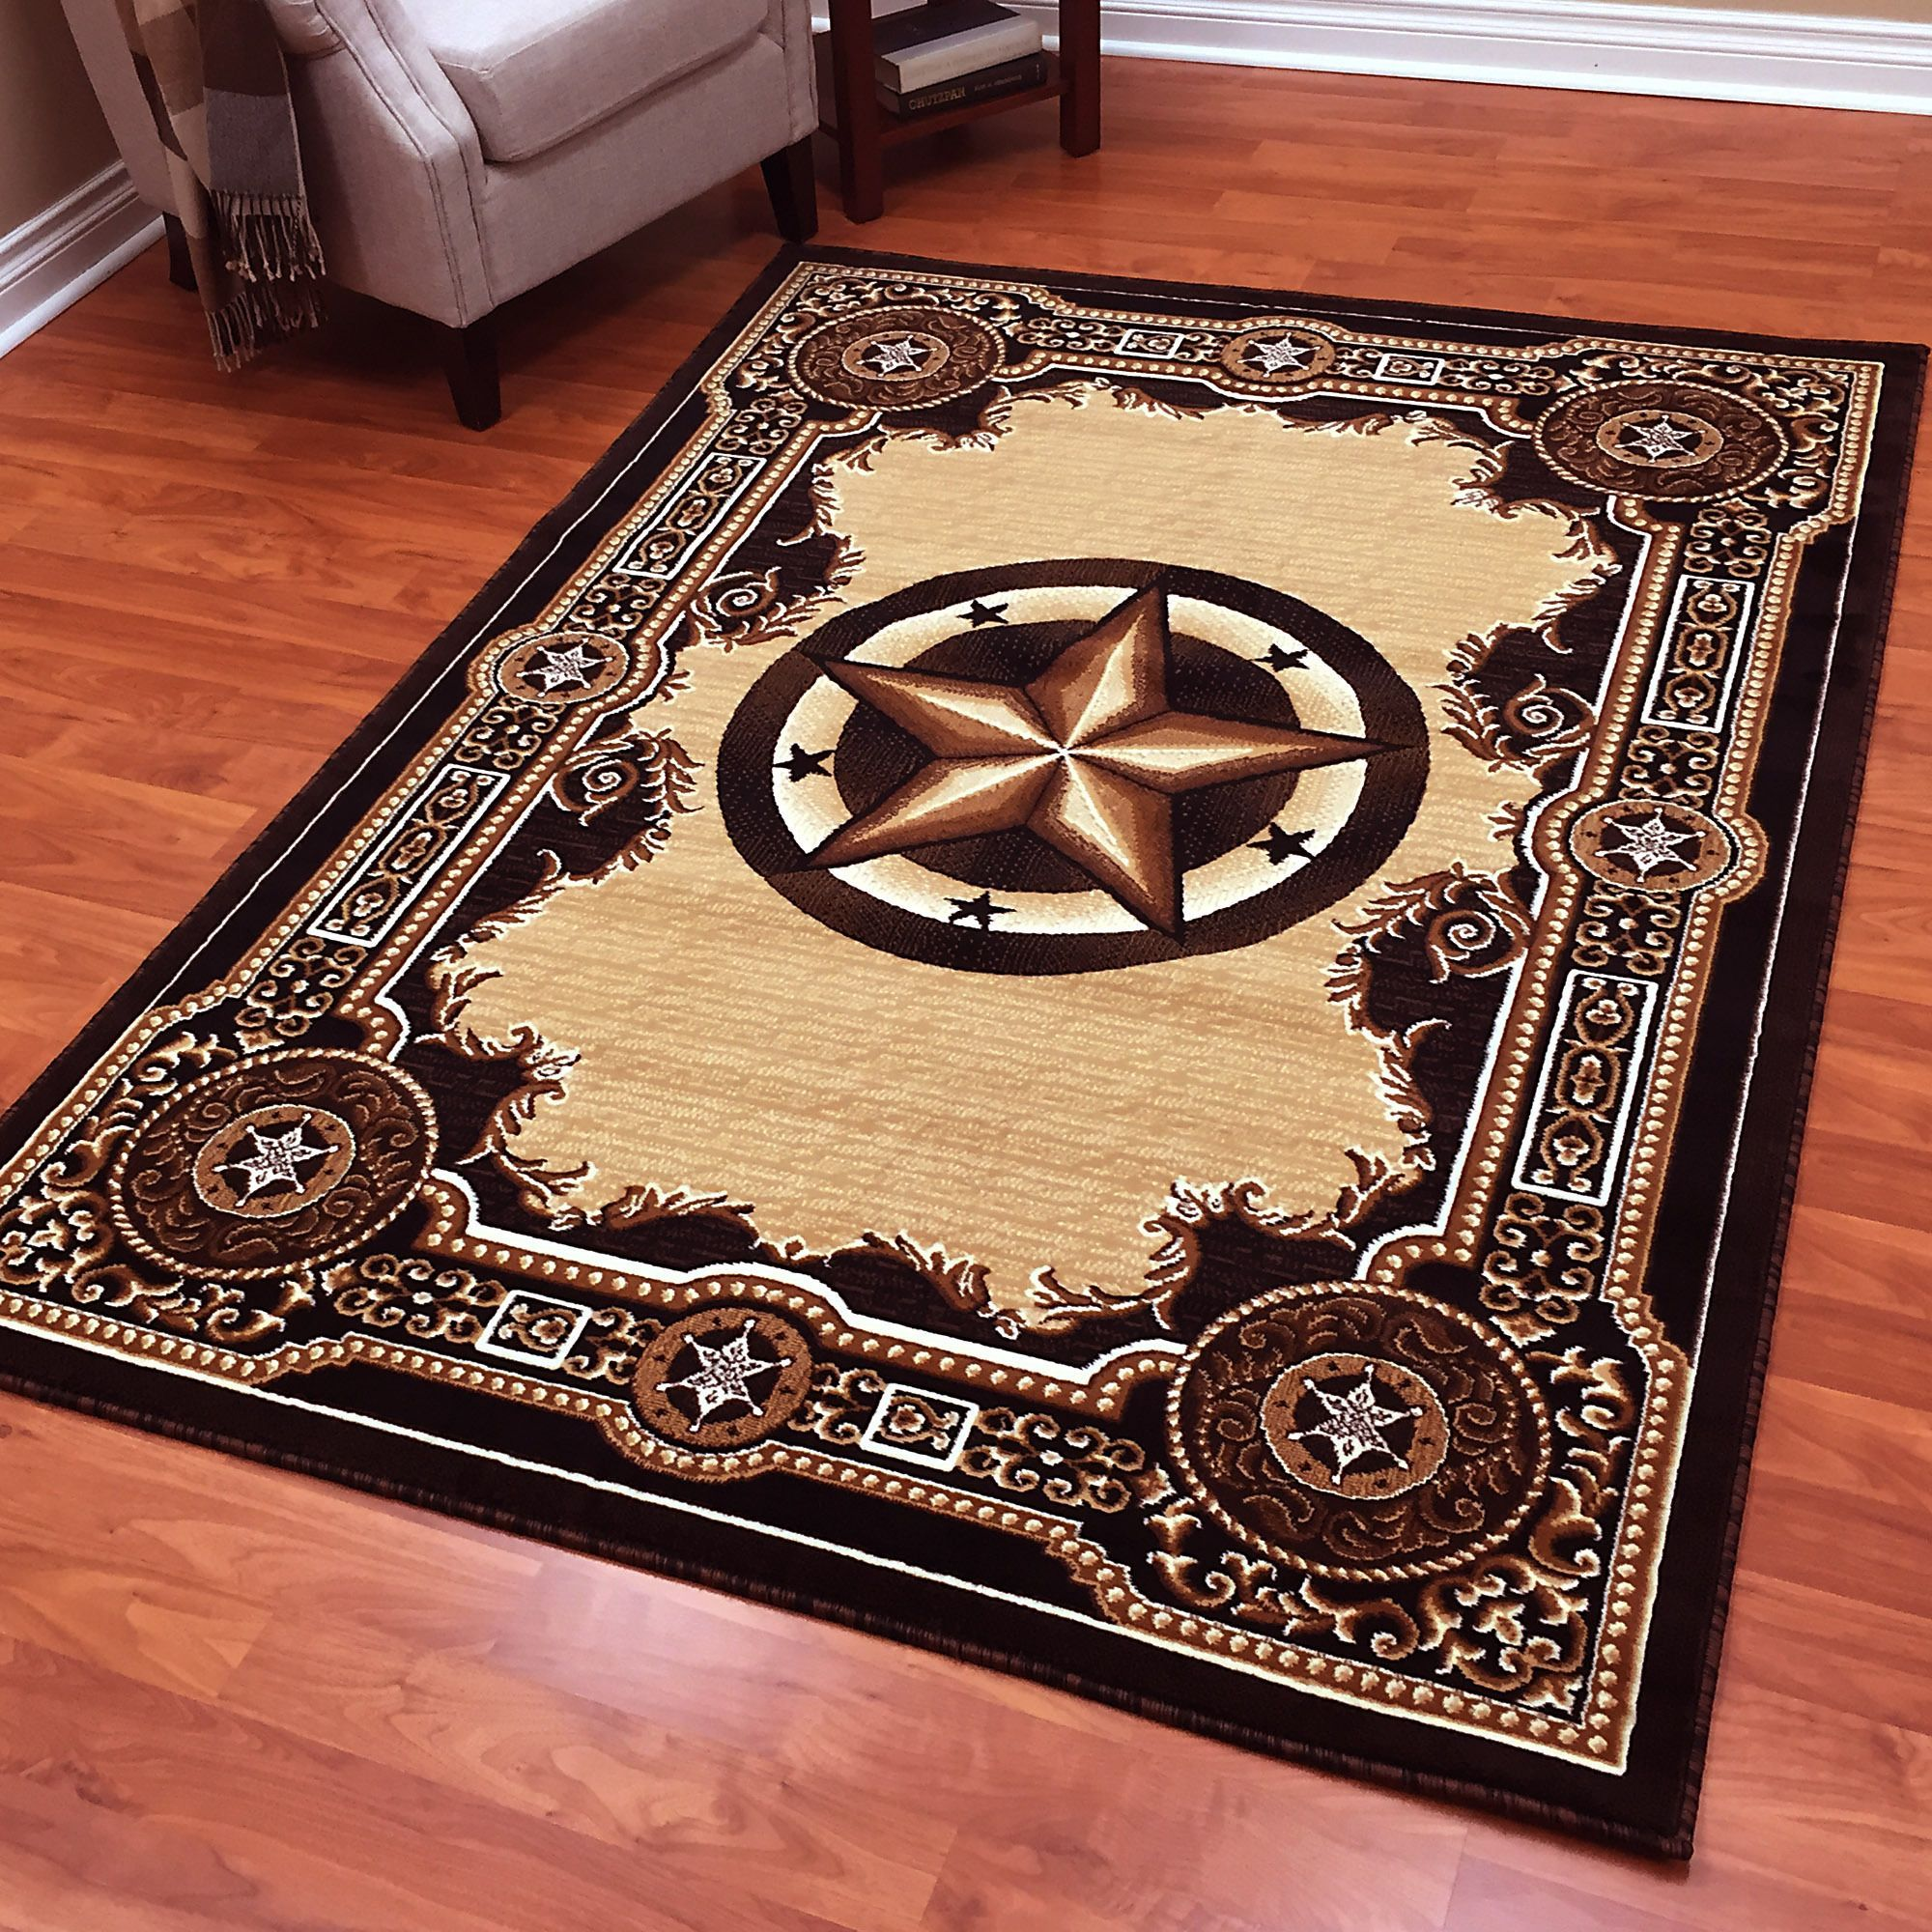 Large Western Rugs: DonnieAnn Traditions Western Star Black Polypropylene Area